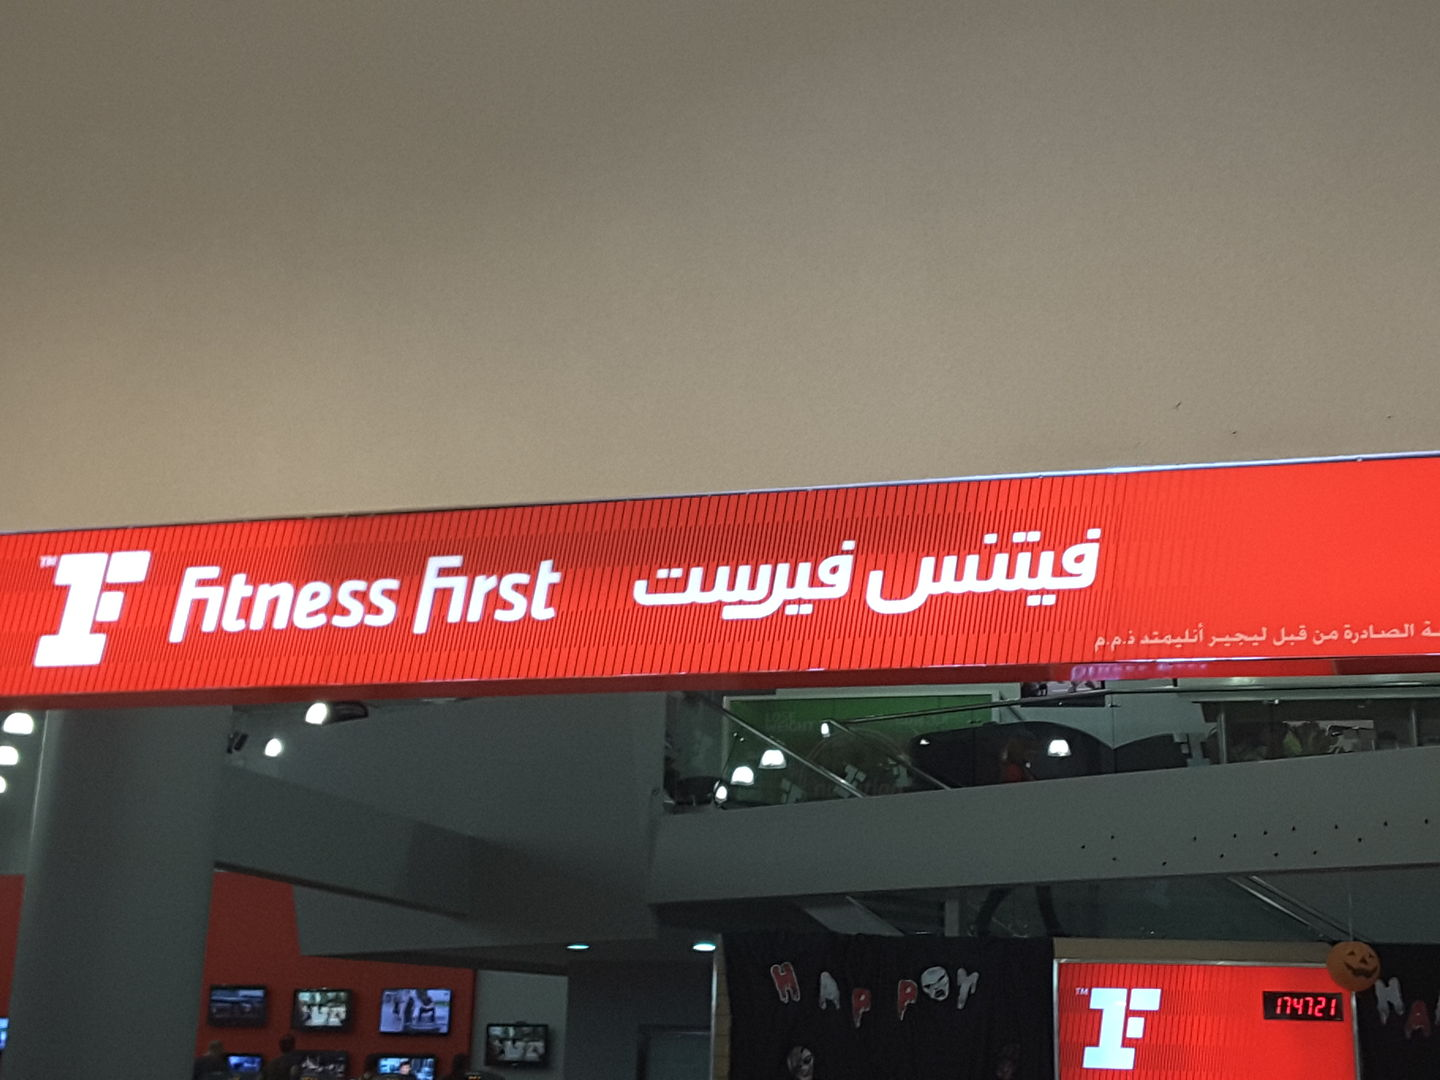 HiDubai-business-fitness-first-sports-fitness-gyms-fitness-centres-pools-ibn-batuta-jebel-ali-1-dubai-2